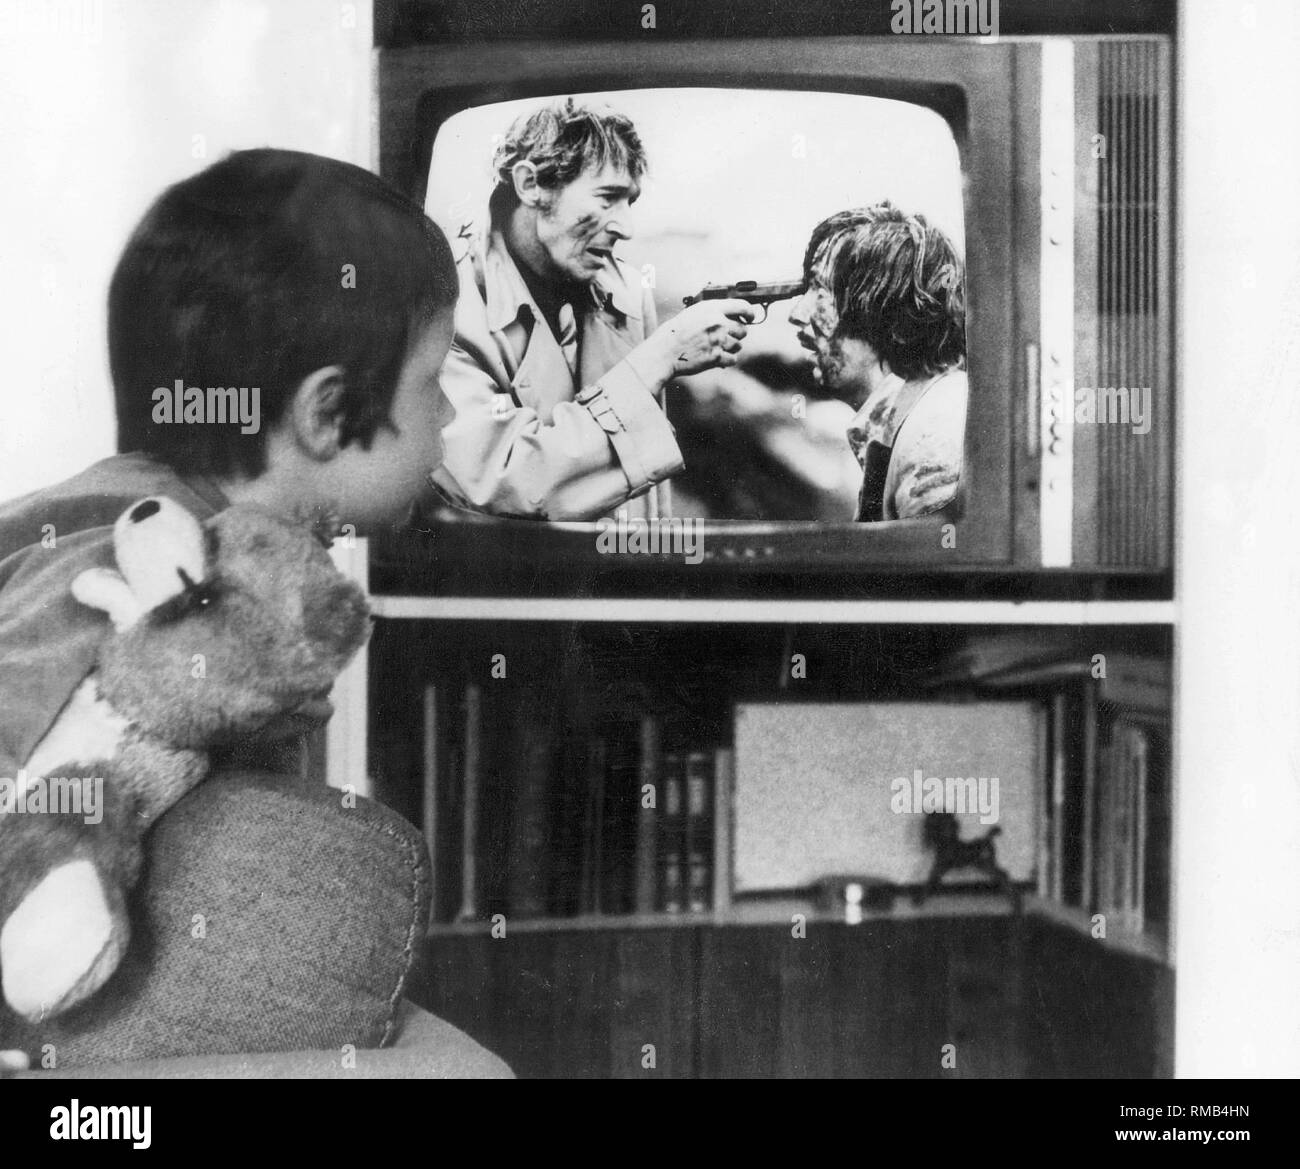 Children watch TV: Brutality and crime on German television, 1972. Five-year-old Ralf watches TV and clings to his teddy. The program shows a scene from the 'Tatort' crime movie 'Rattennest'. - Stock Image